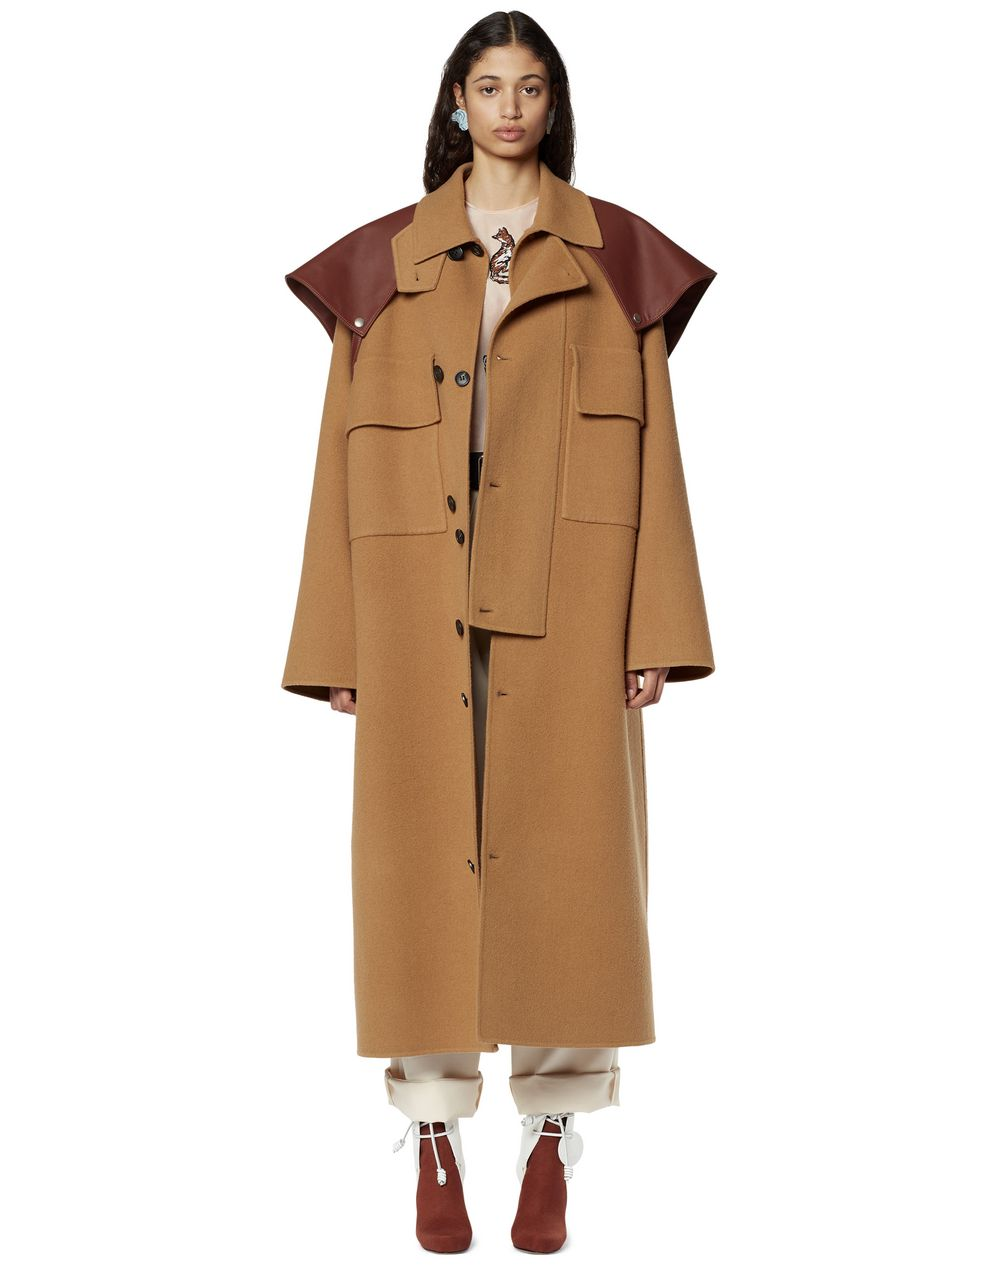 WOOL COAT WITH DETACHABLE CAPE - Lanvin